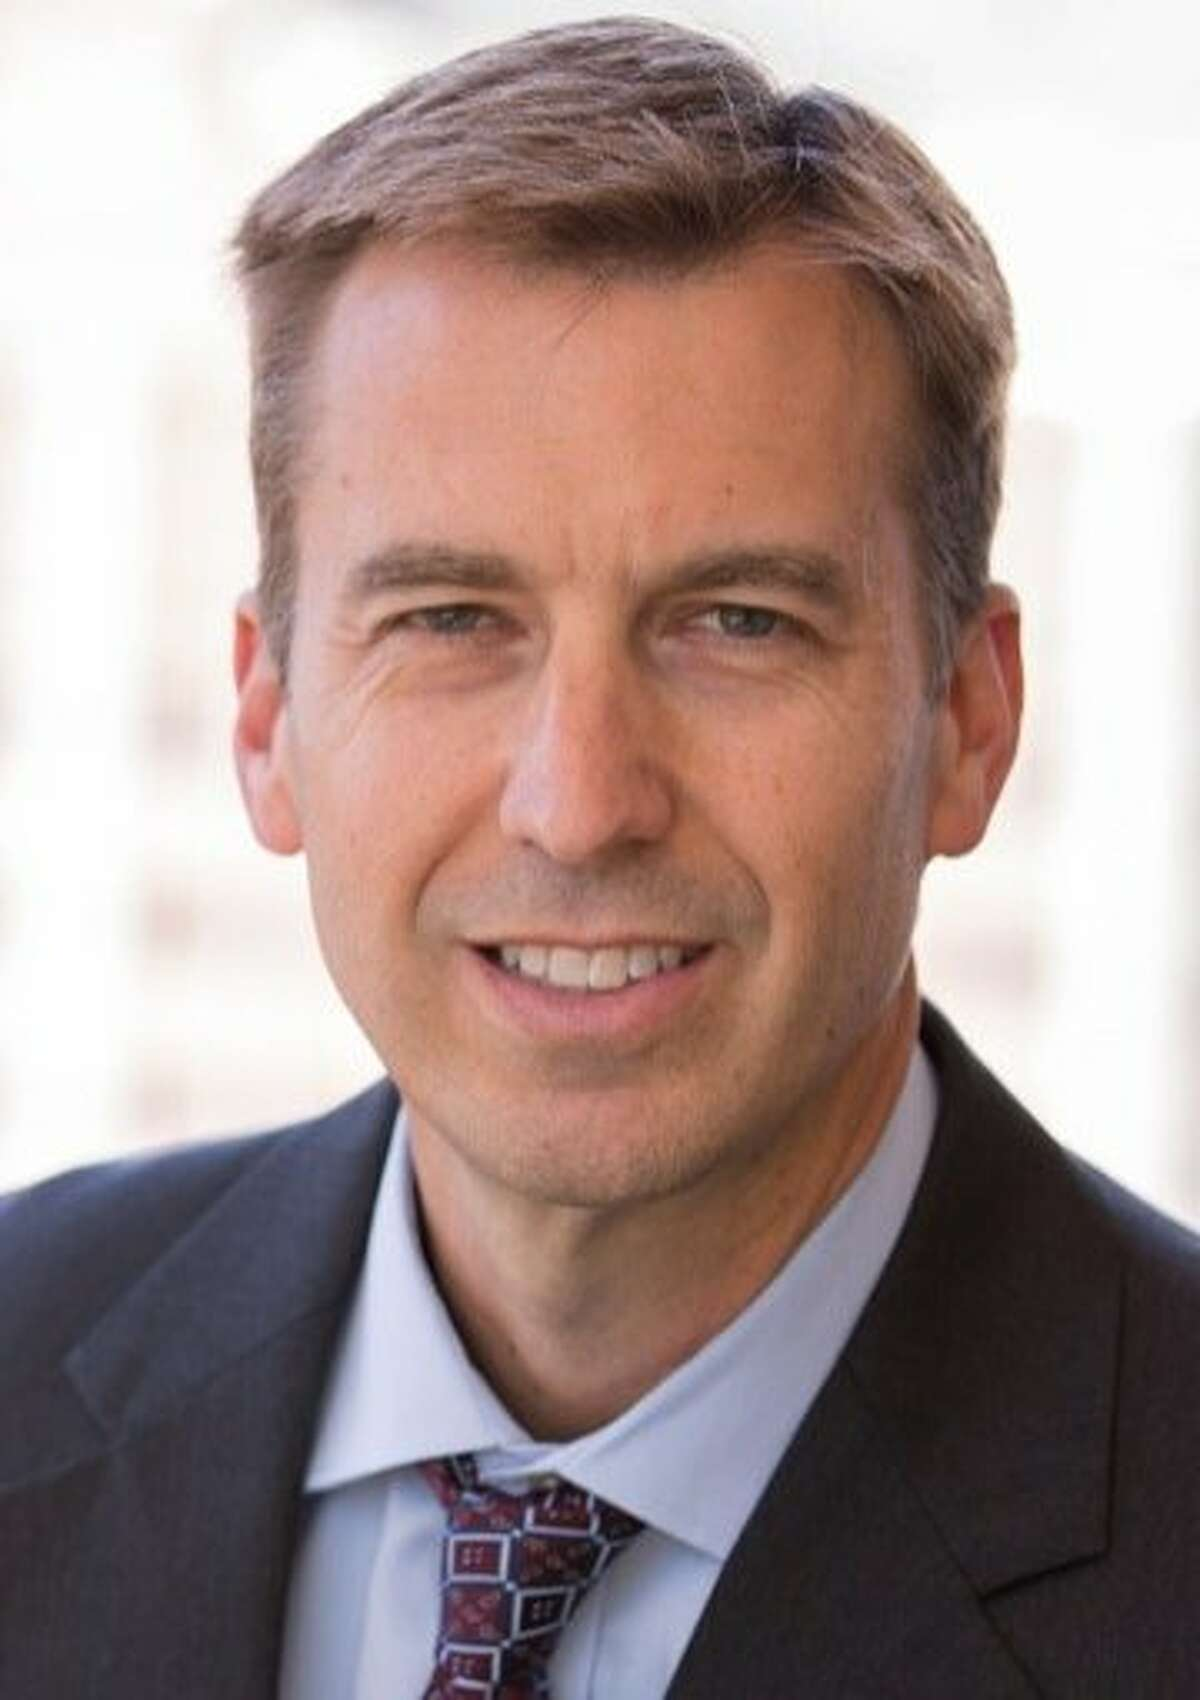 T.Y. Lin International Group hired William Harnagel as chief financial officer.